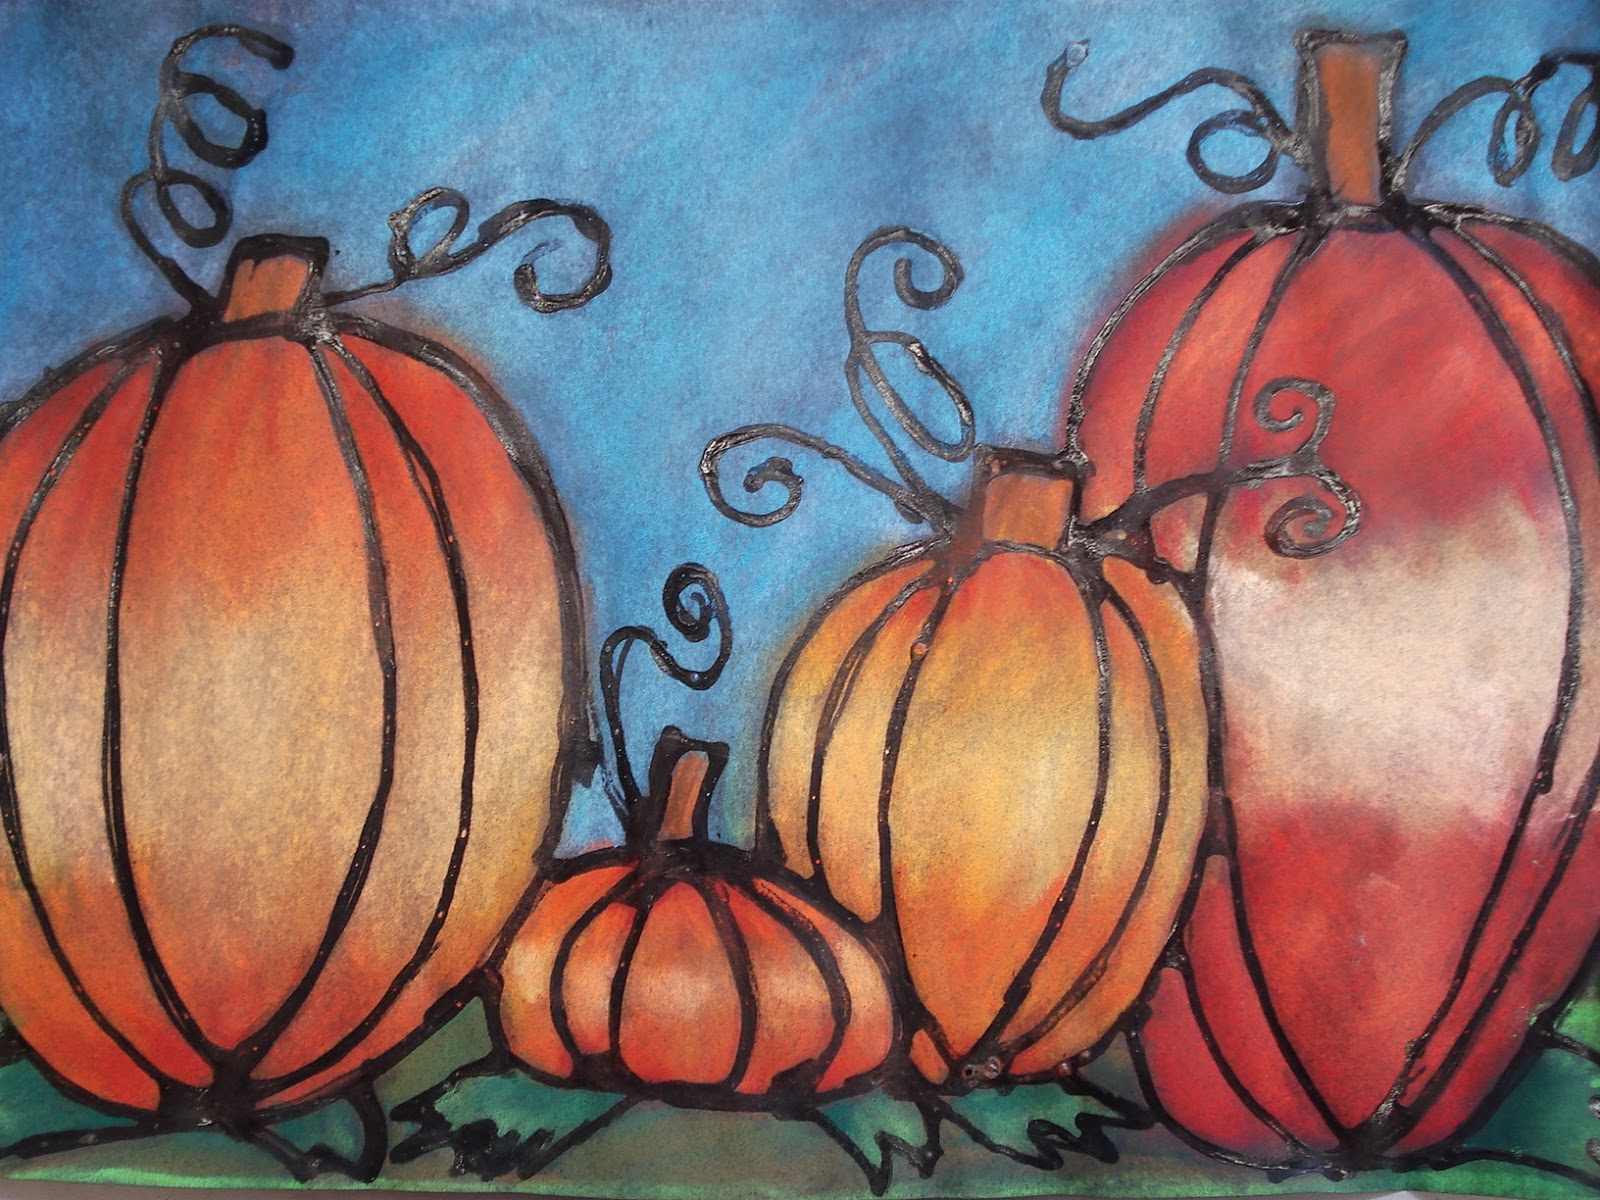 Drawn pumpkin chalk Chalk attempt: Chalk Pumpkins Pastel